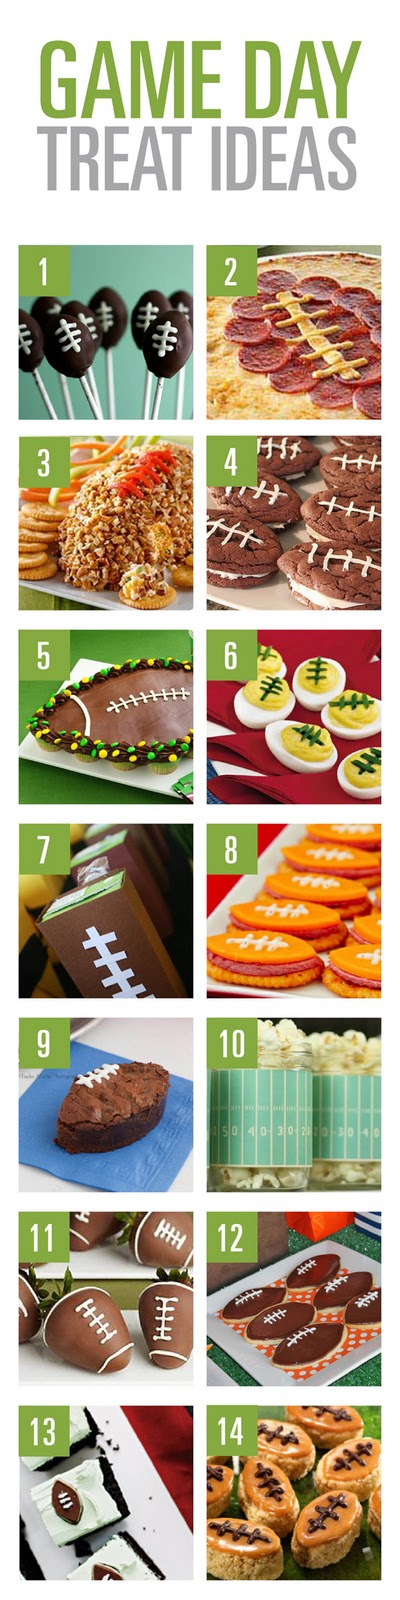 Super Bowl Eats: Grand Finale